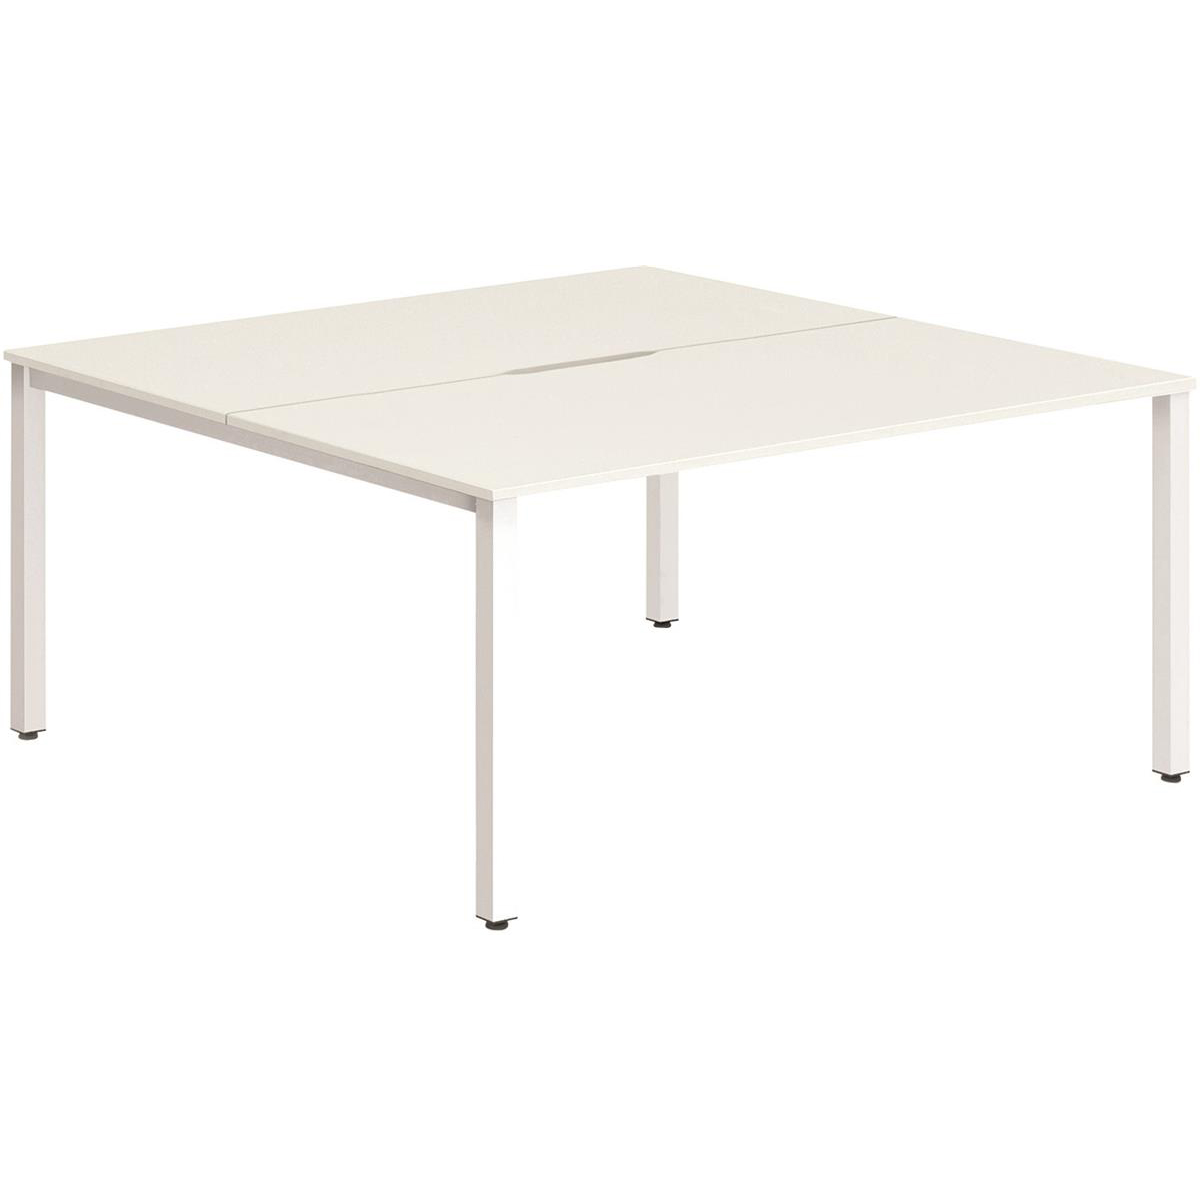 Trexus Bench Desk 2 Person Lockable Sliding Top 1400mm White with White Frame